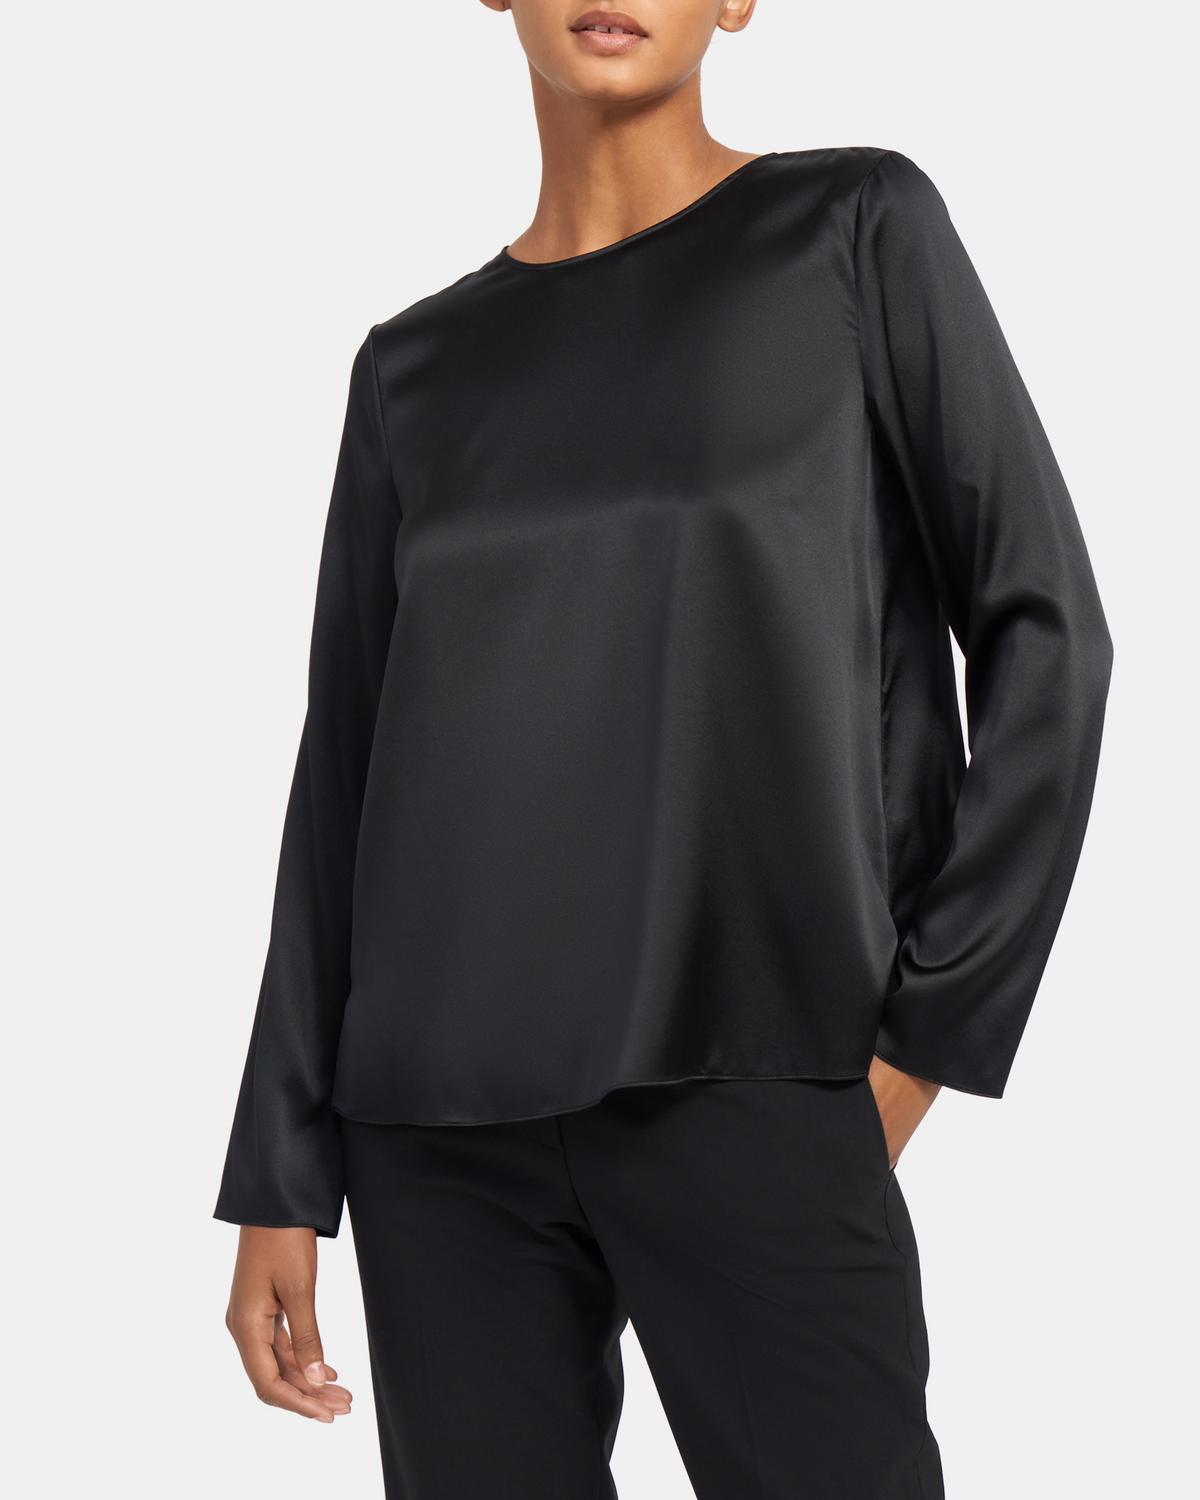 SIMPLE LS TOP